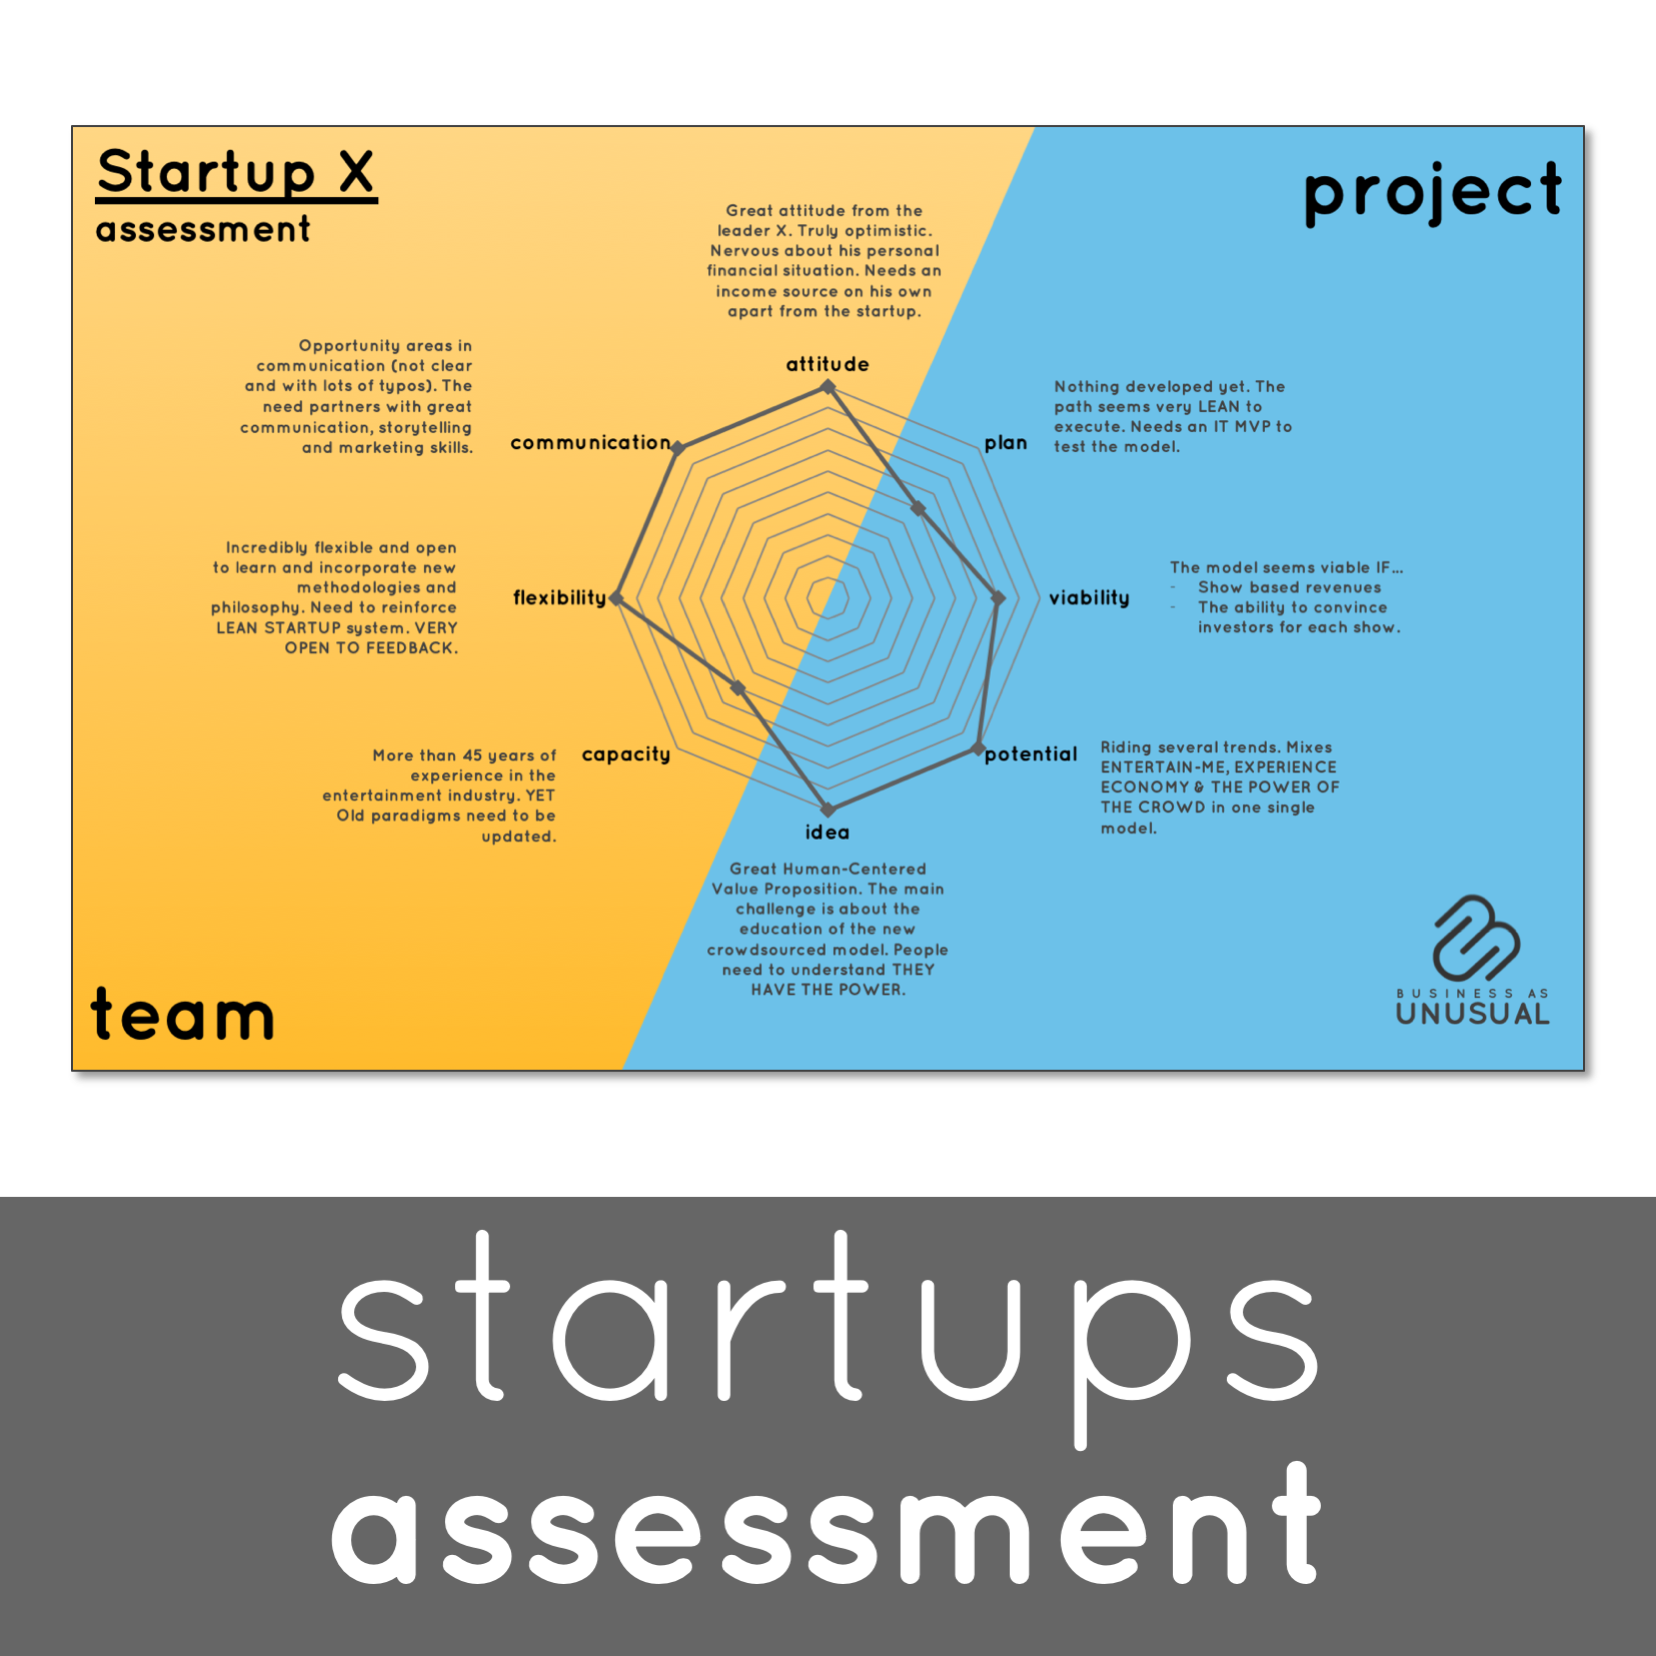 Unusual Games - Startups Assessment - How to spot a good investment opportunity